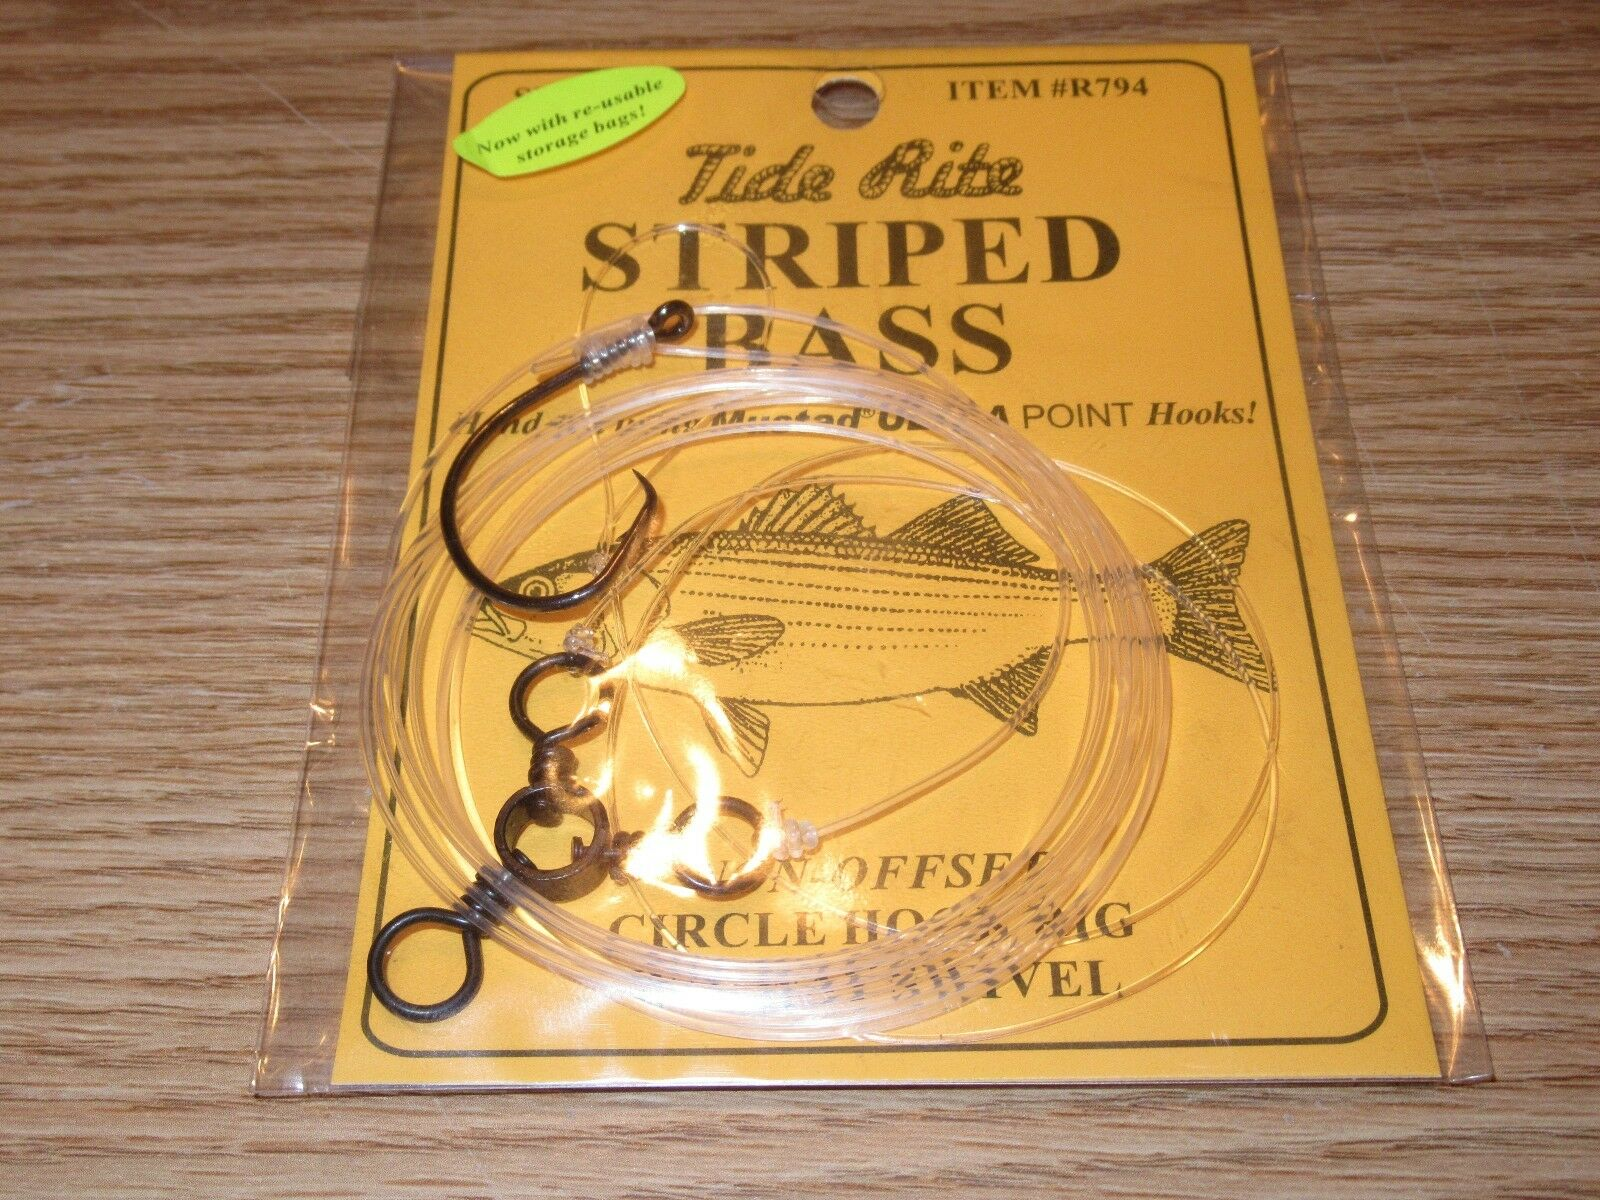 24 STRIPED BASS TIDE RITE R794 CIRCLE HOOK 3-WAY RIGS SALTWATER FISH RIG MUSTAD